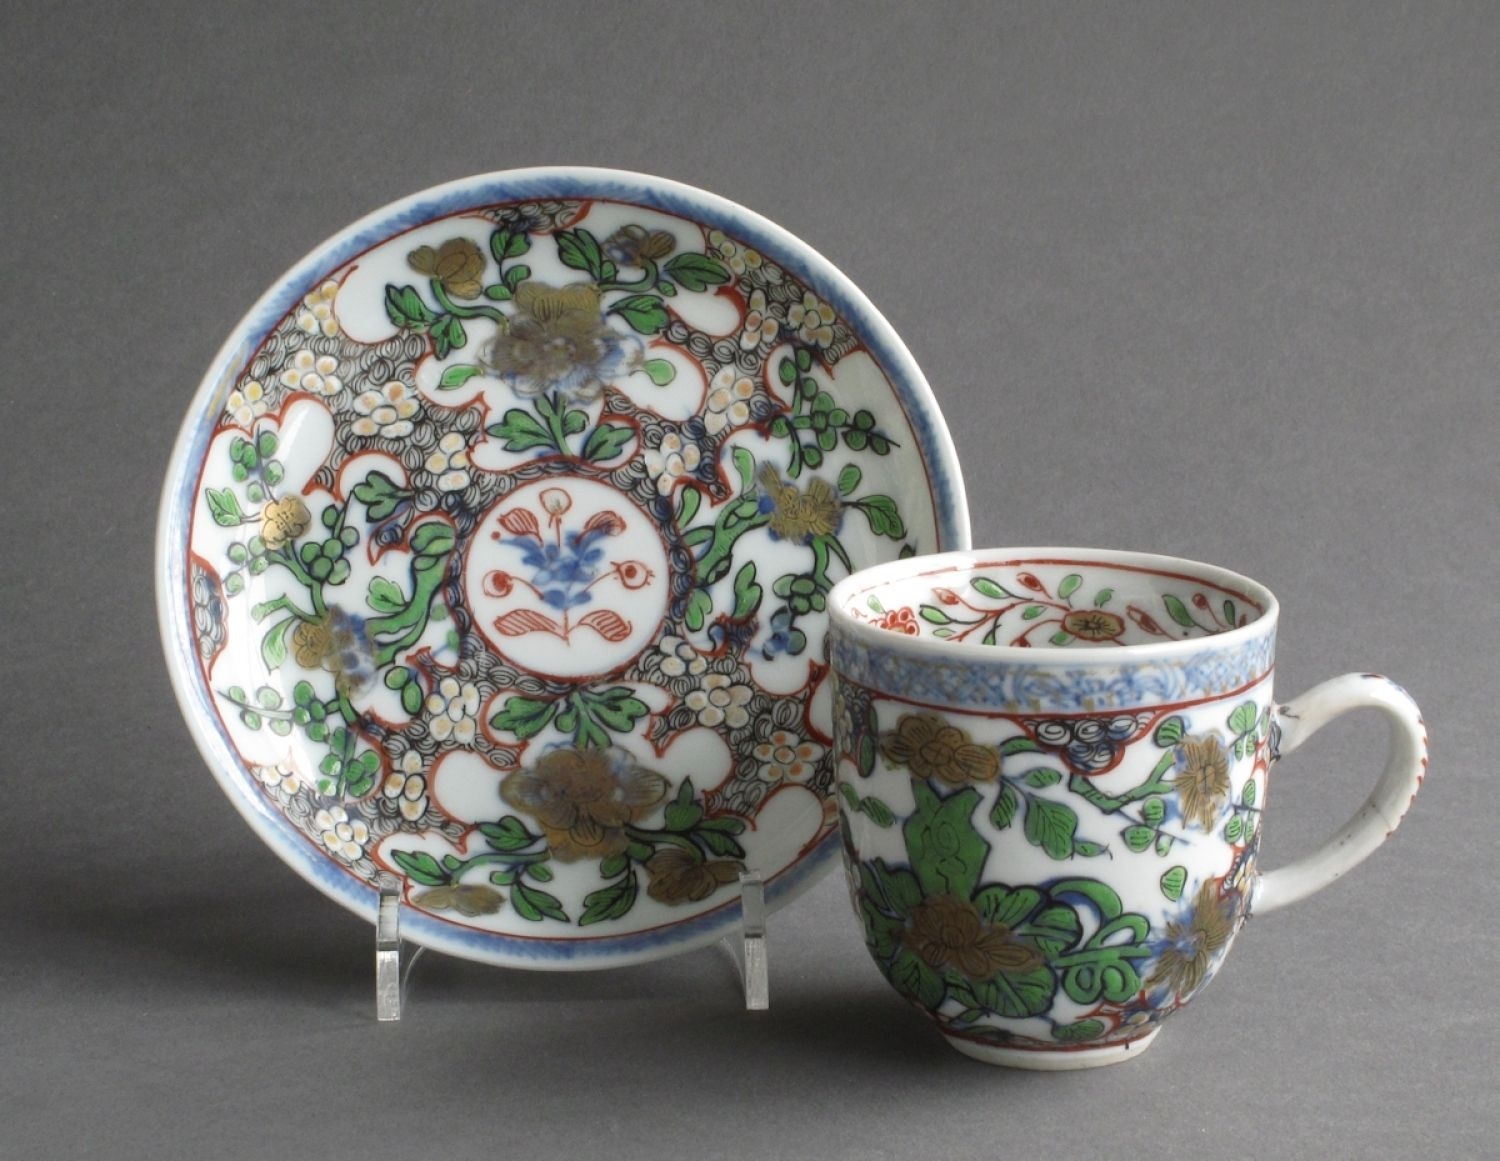 Chinese Coffee Cup Saucer With London Decor In European Decorated Chinese Porcelain London Decor Saucer Decor